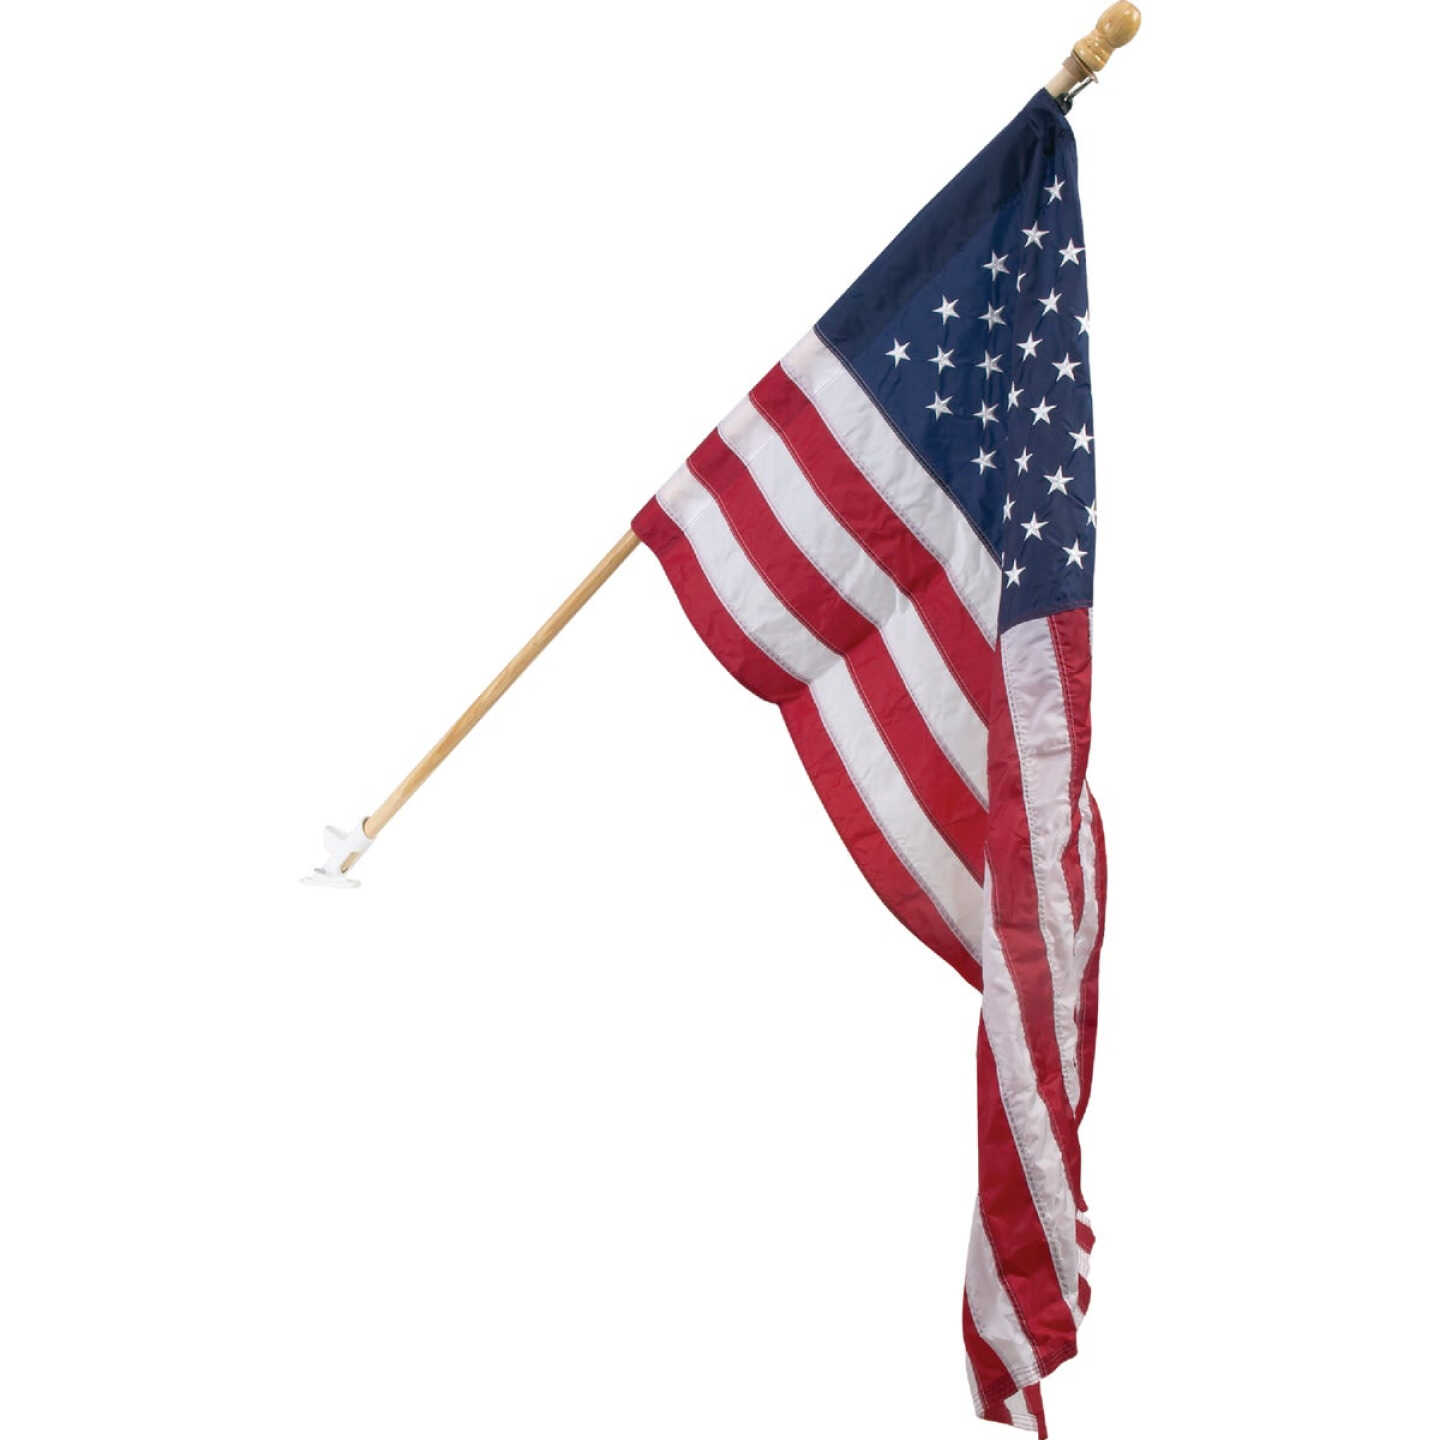 Valley Forge 2.5 Ft. x 4 Ft. Nylon American Flag & 5 Ft. Pole Display Kit Image 1